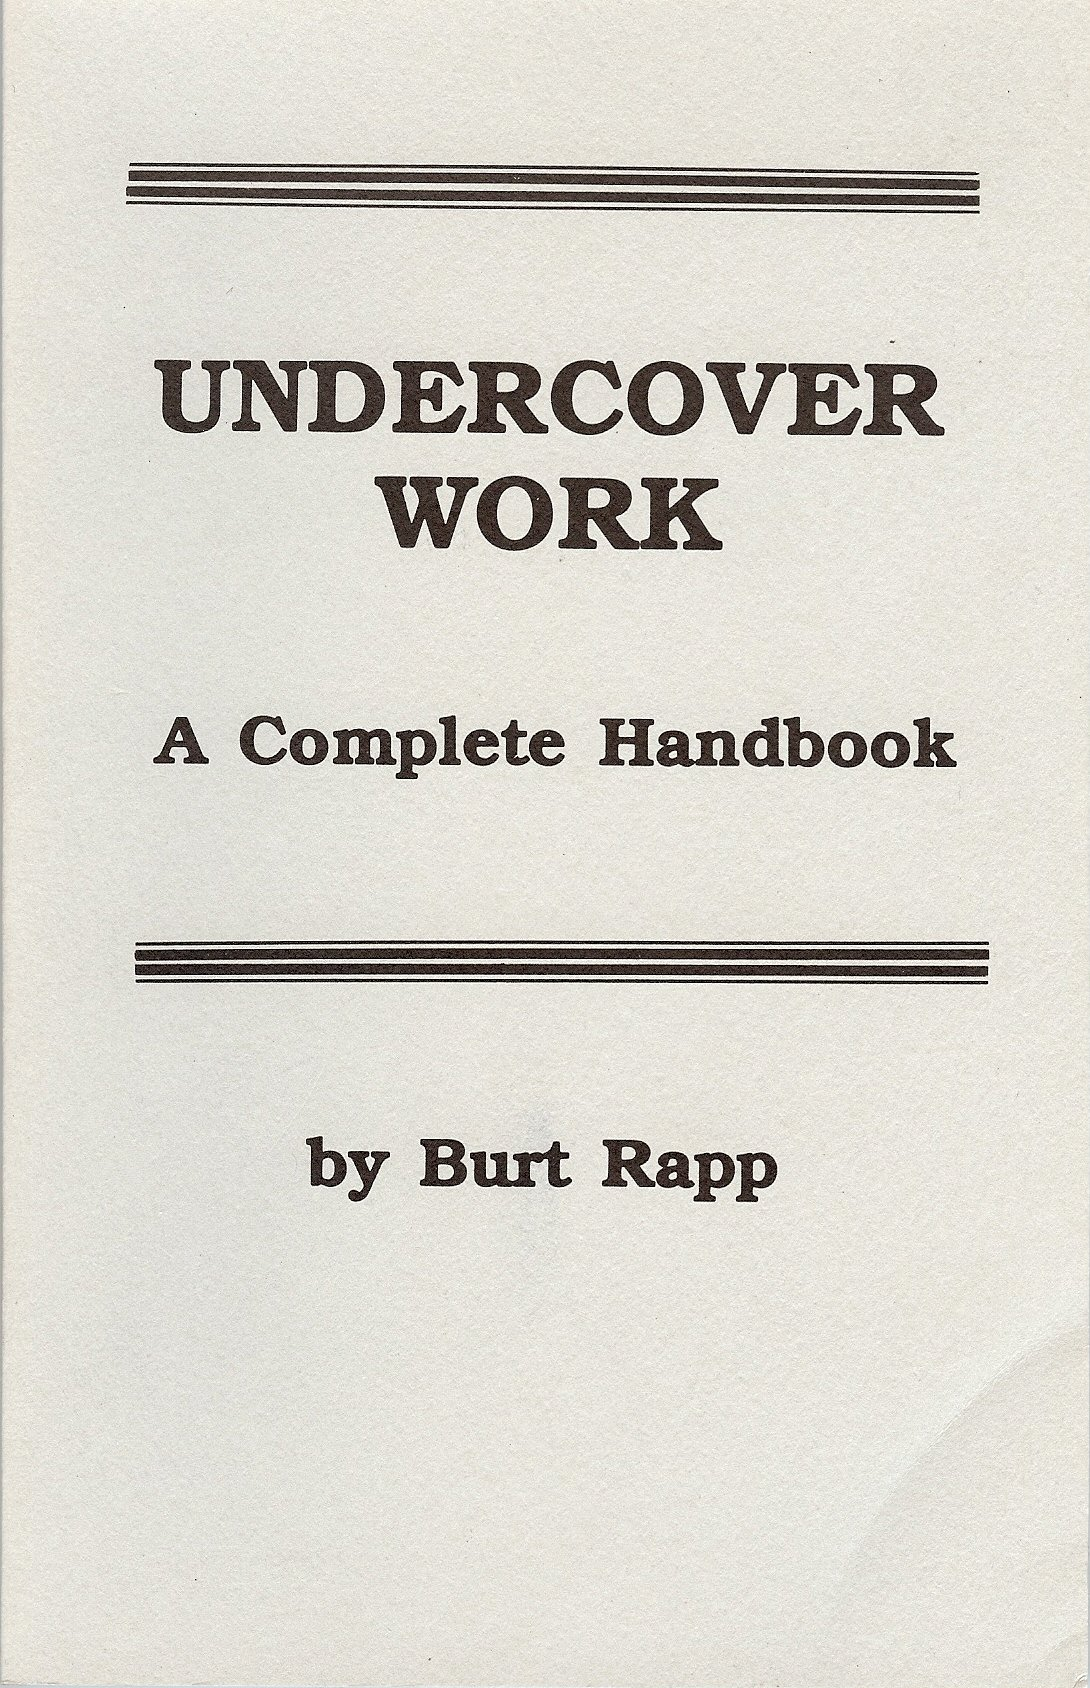 Image for Undercover Work: A Complete Handbook